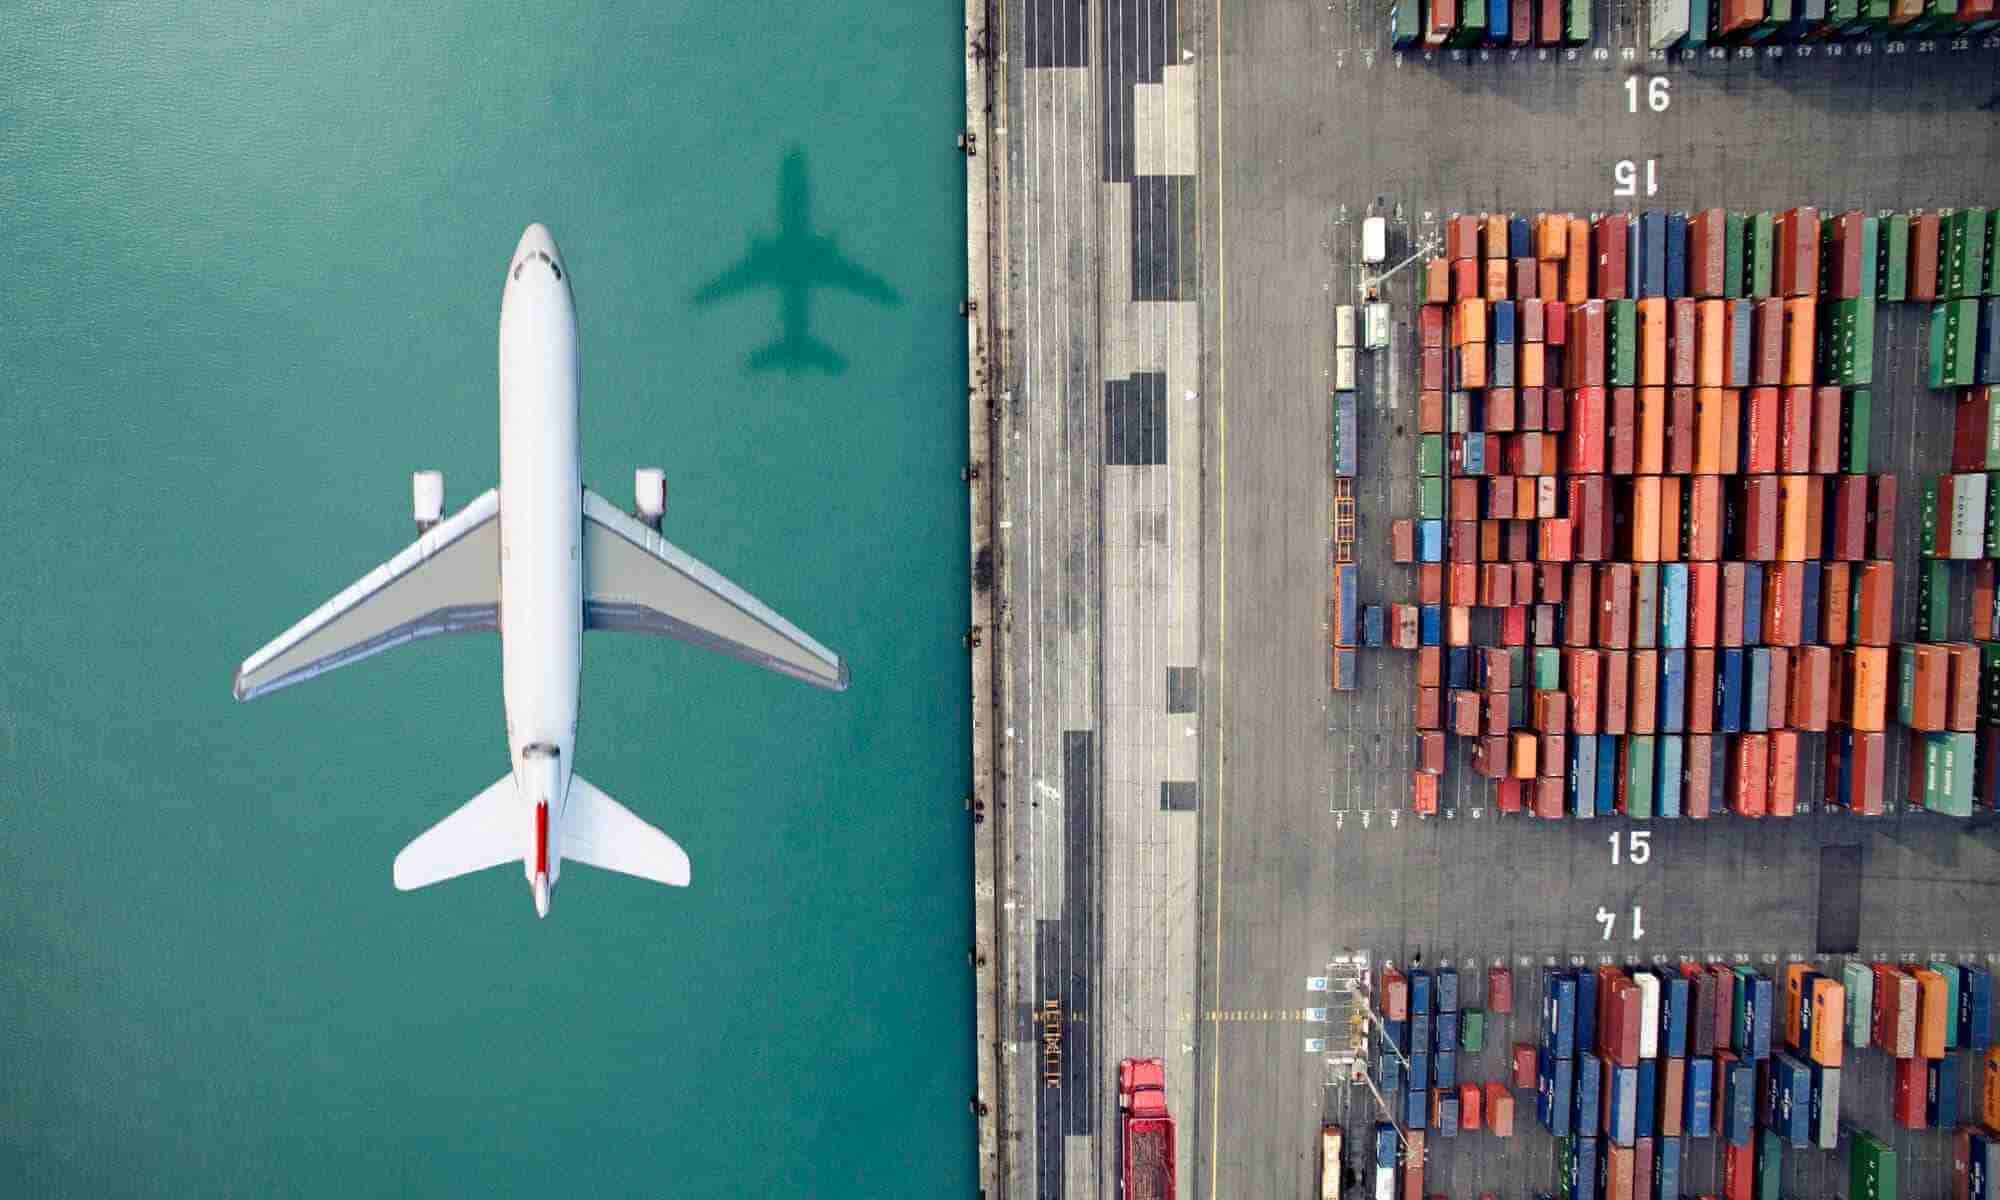 IATA Warns About Global Trade After Demand Falls